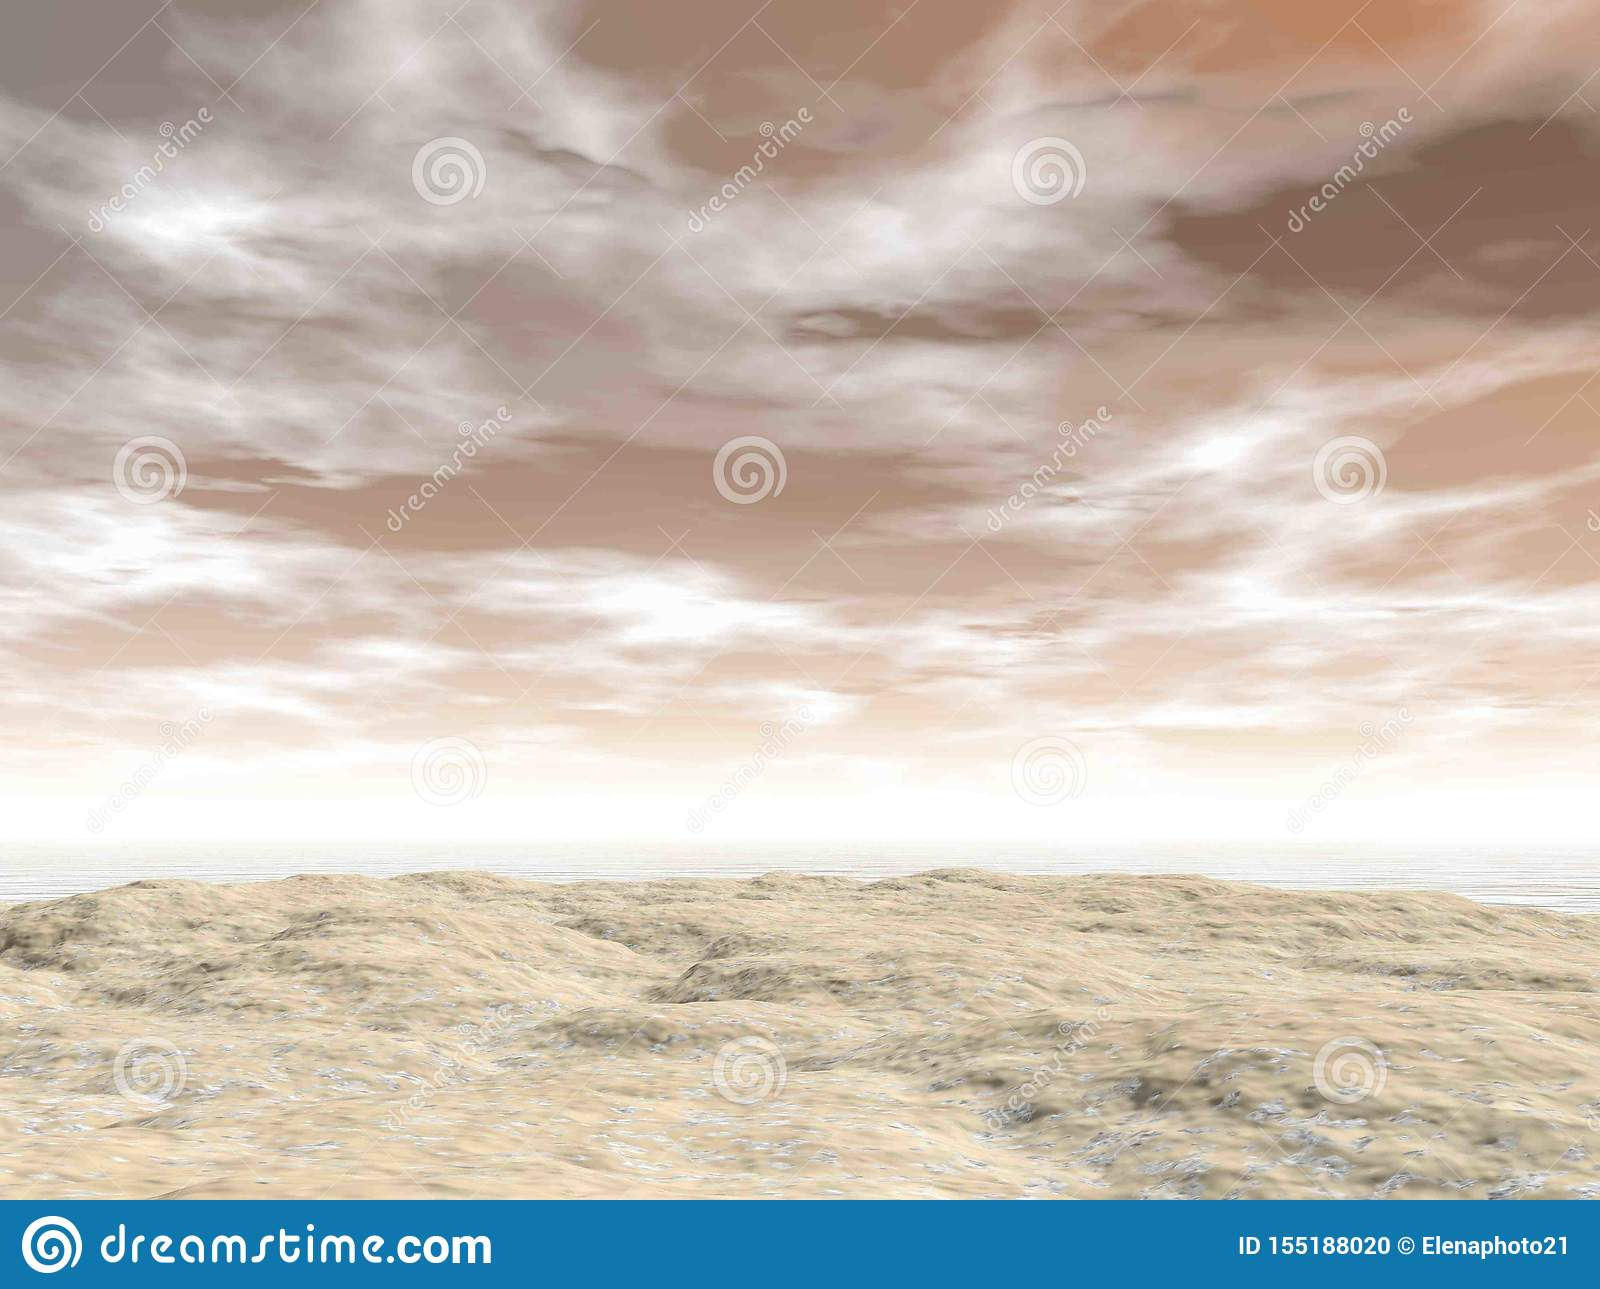 Beach ground by cloudy sunset background - 3D render